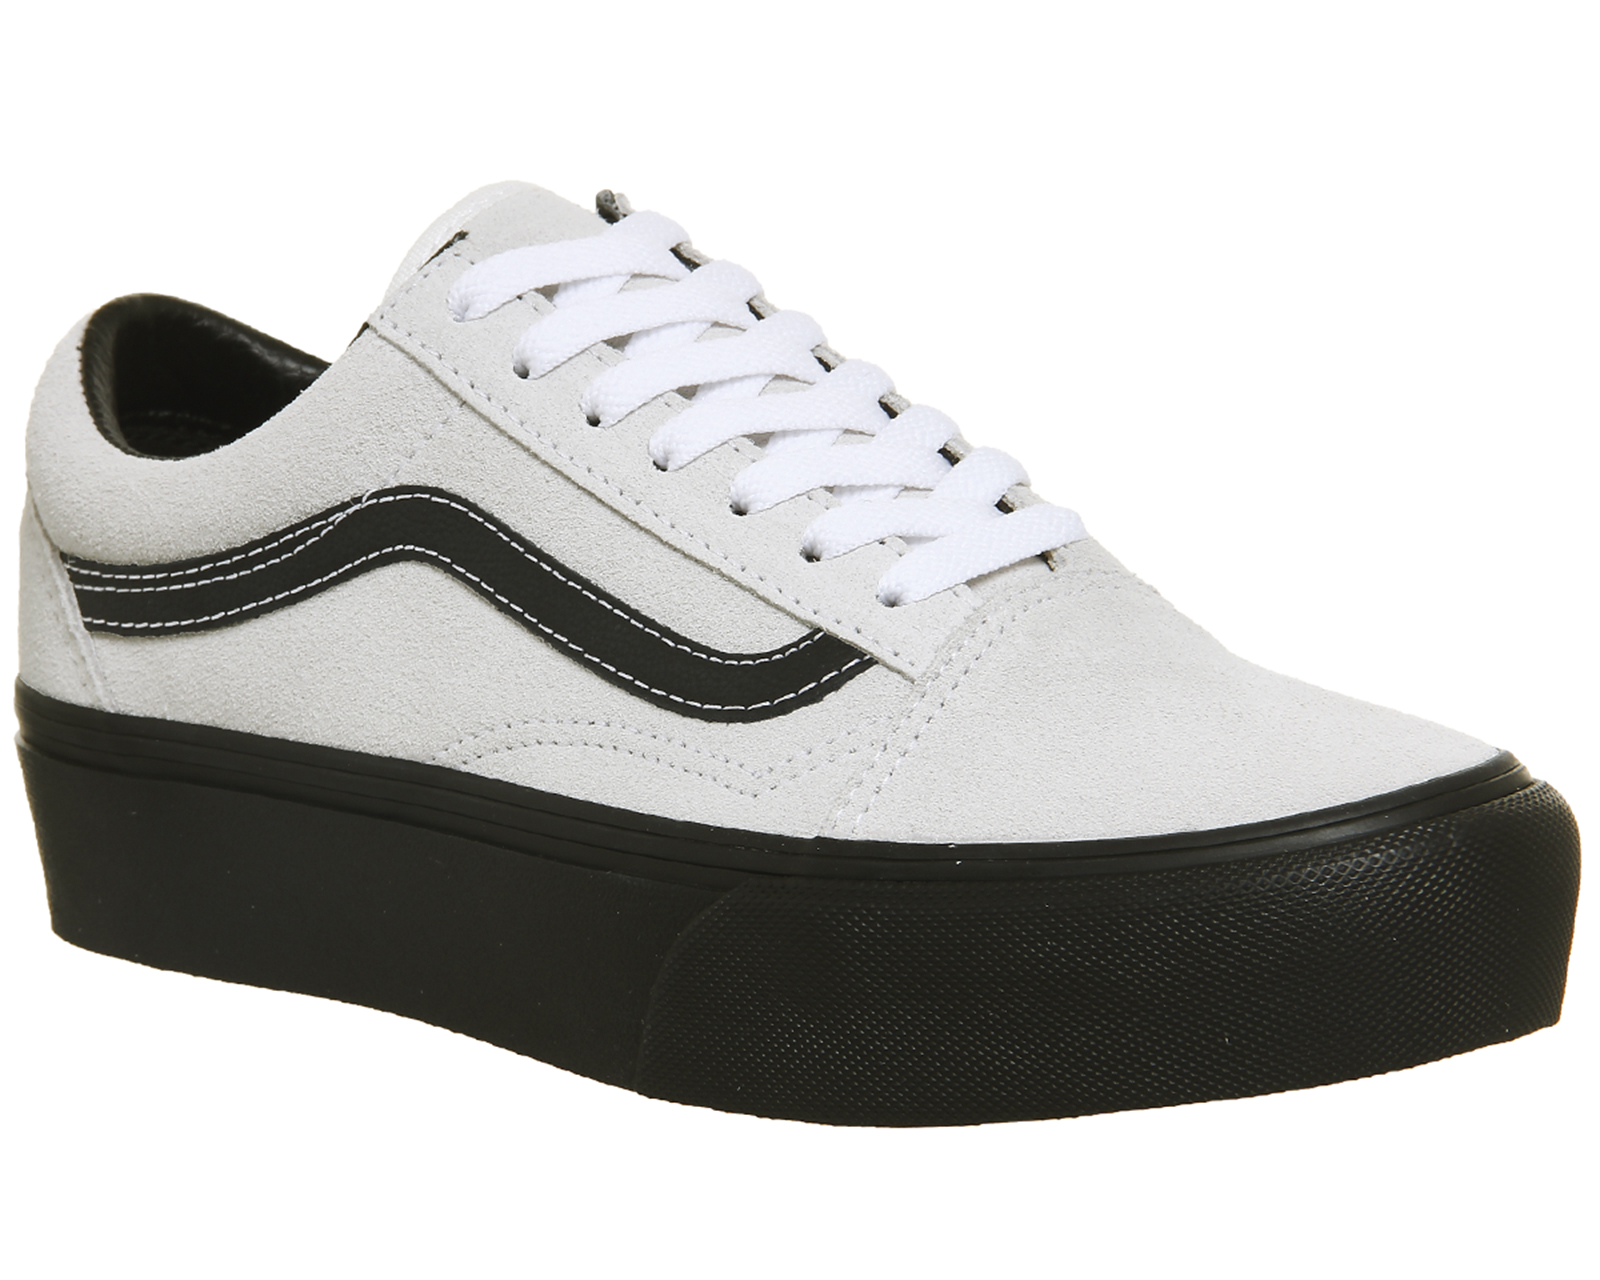 32542c1263141e Sentinel Womens Vans Old Skool Platforms BLANC BLACK Trainers Shoes